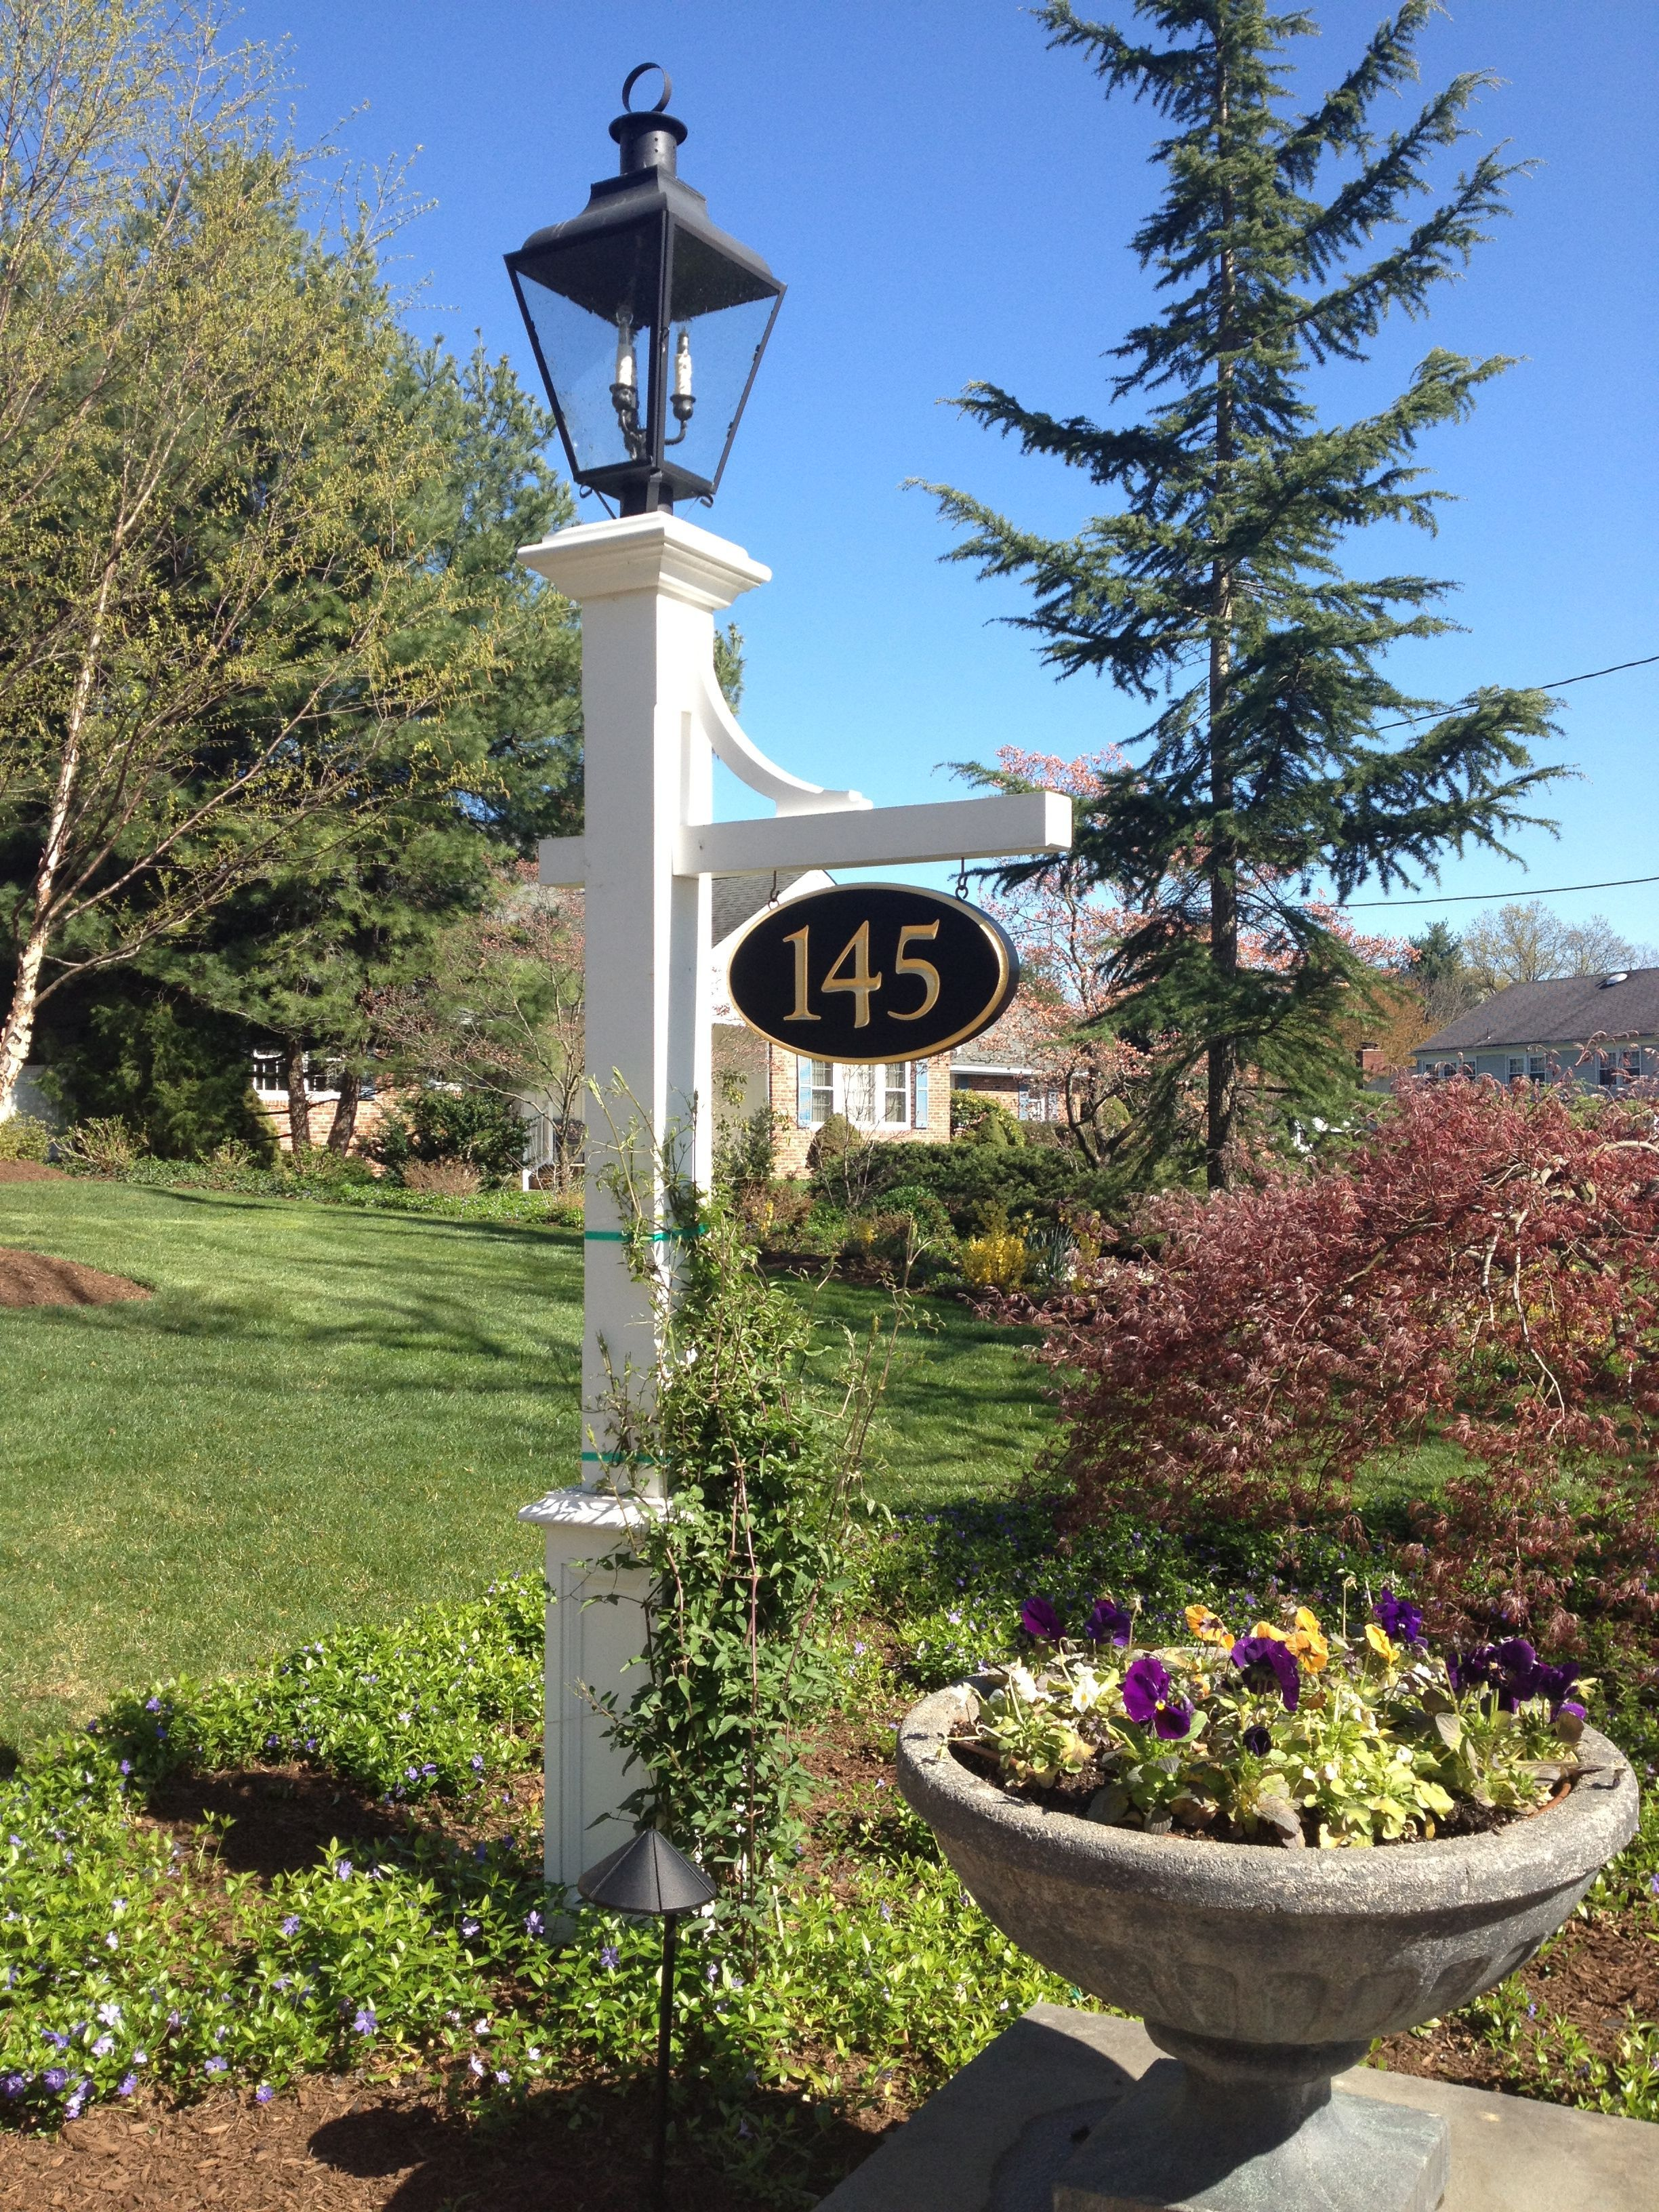 These Low Voltage Lamp Posts Are Welcoming And Charming And Go With Just About A Outdoor Post Lights Outdoor Lamp Posts Garden Lamp Post